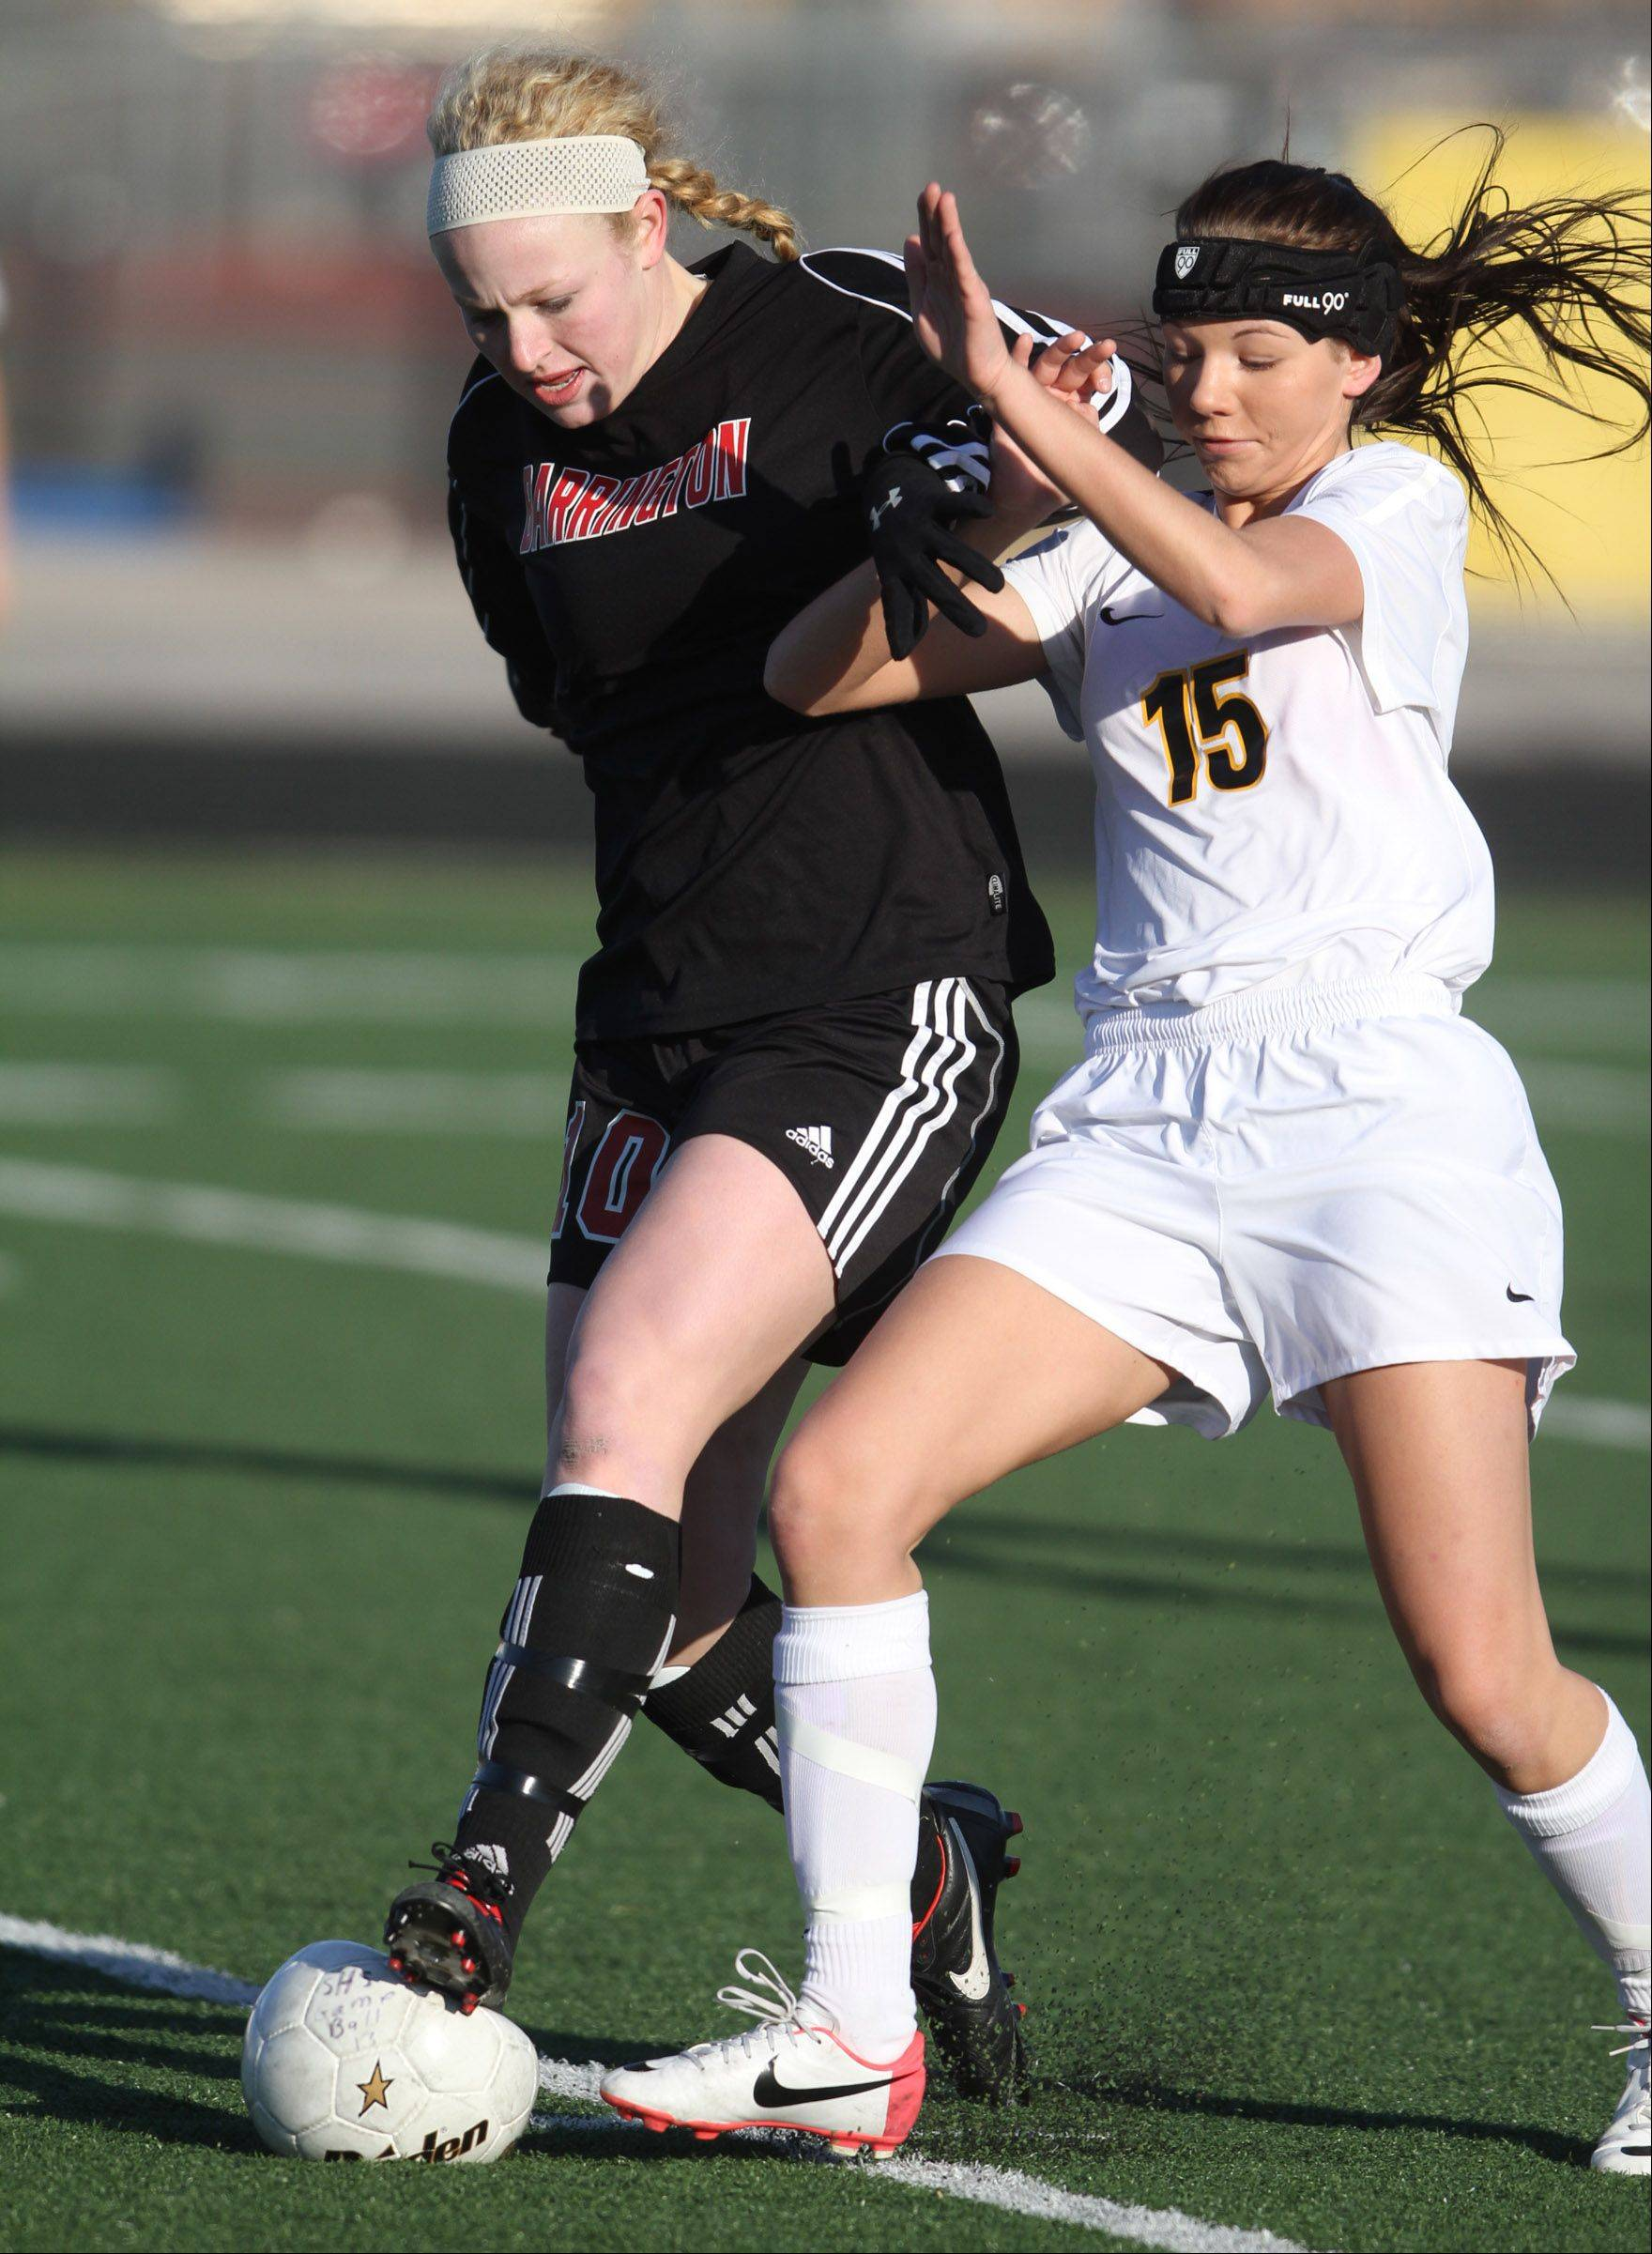 Barrington's Molly Pfeiffer and Schaumburg's Brooke Molitor battle for control of the ball.